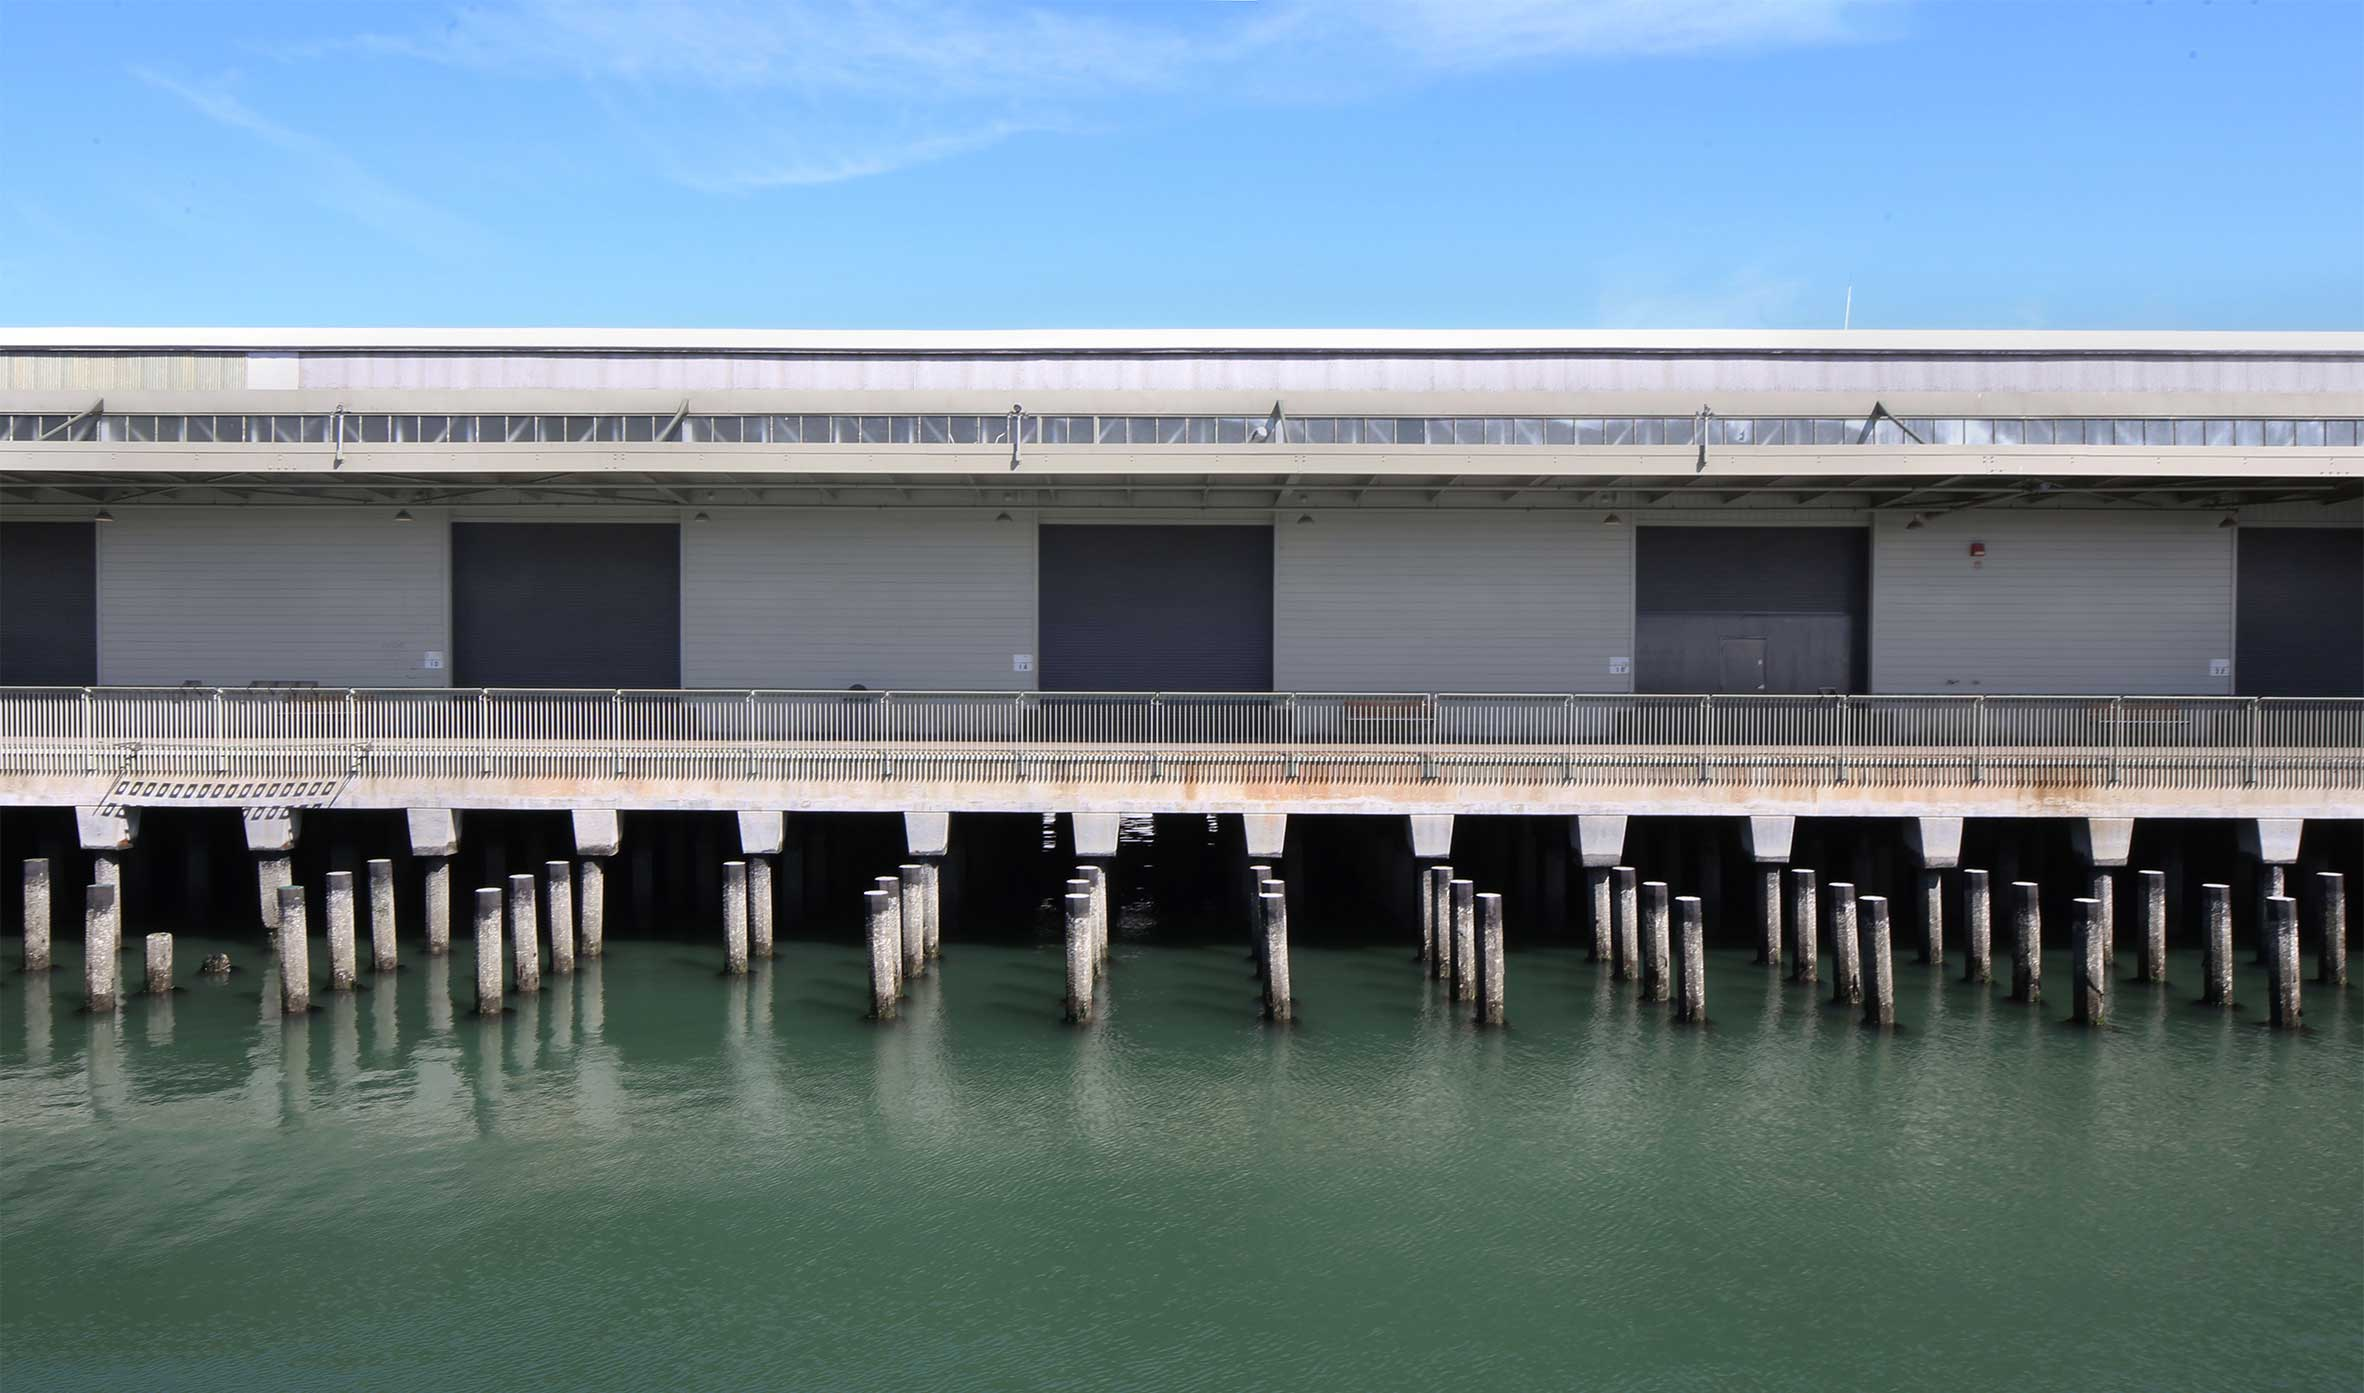 Egress Piers 15 and 17 at The Exploratorium, The Embarcadero San Francisco Substructure Superstructure